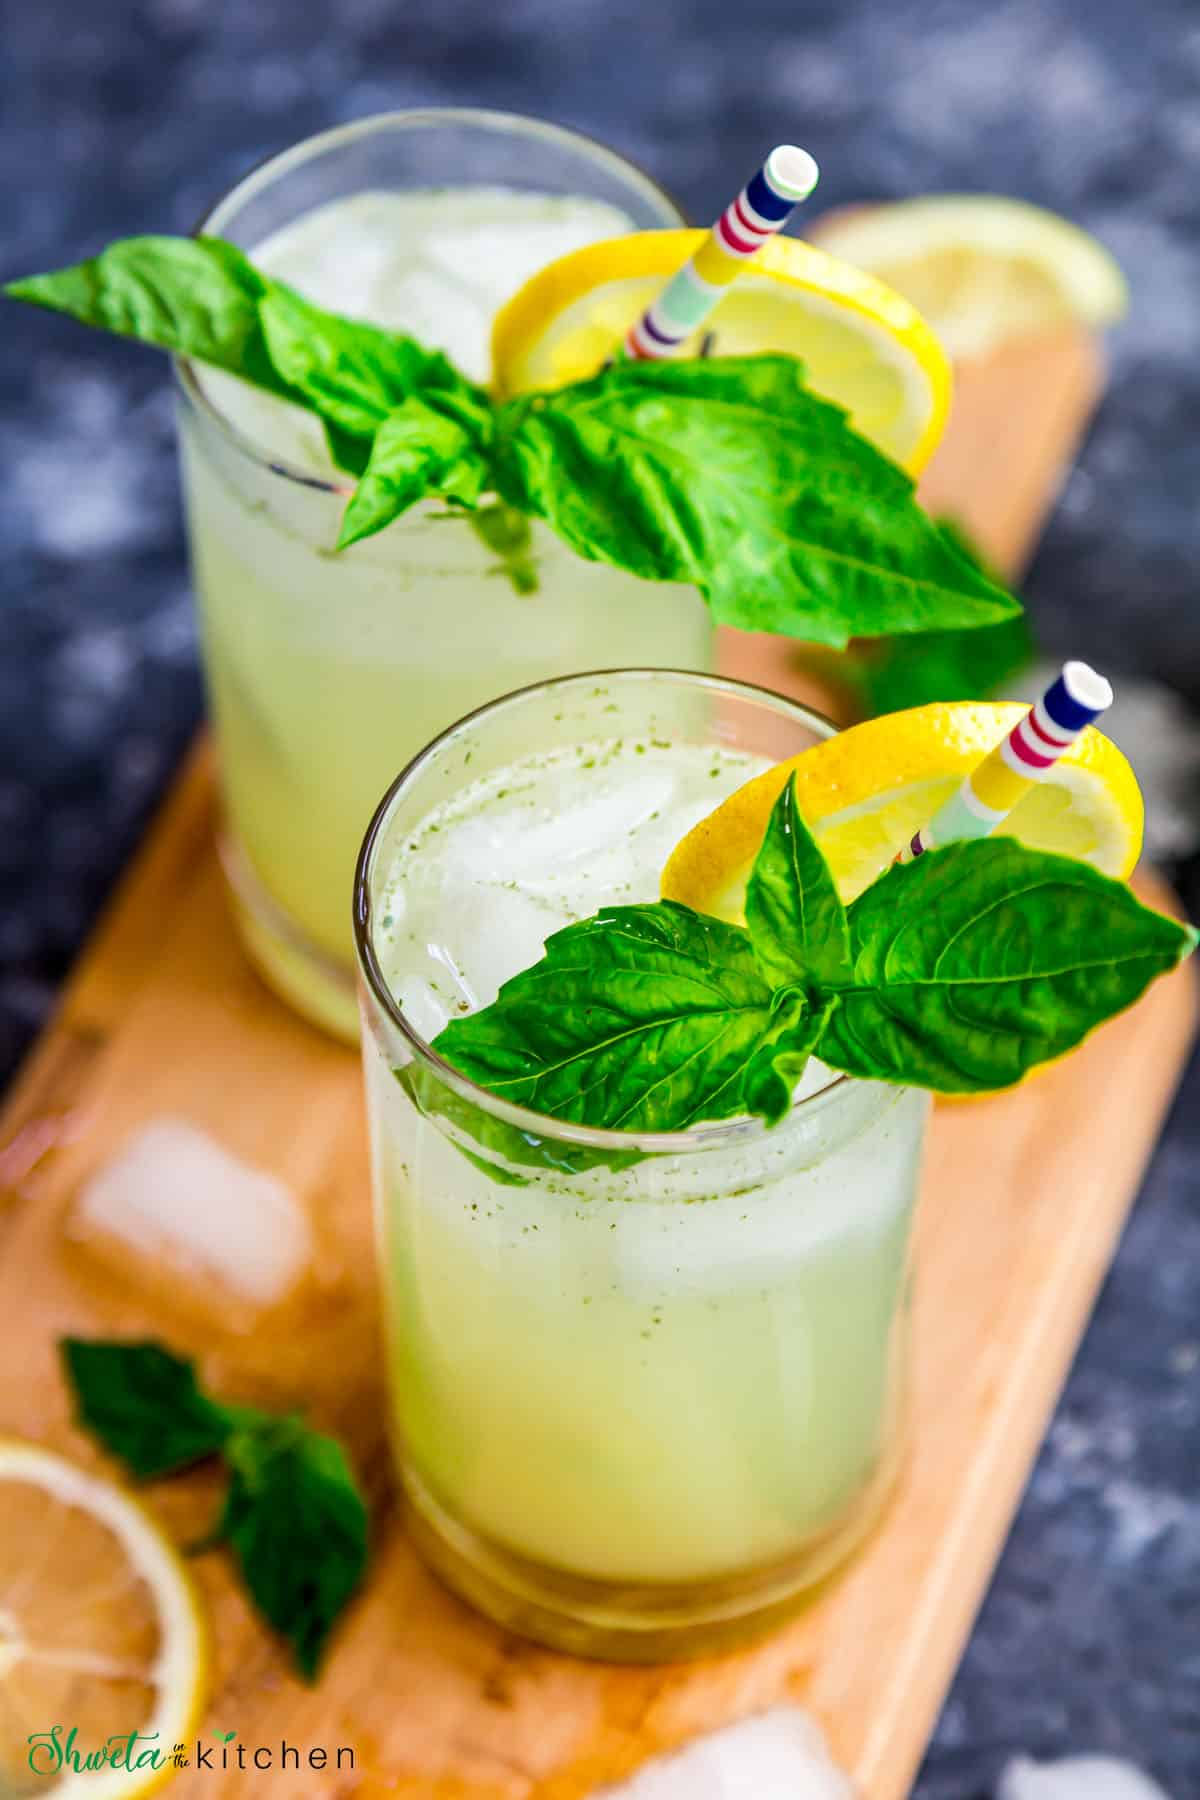 Side top view of Two glasses of basil ginger lemonade garnished with lemon and basil leaves